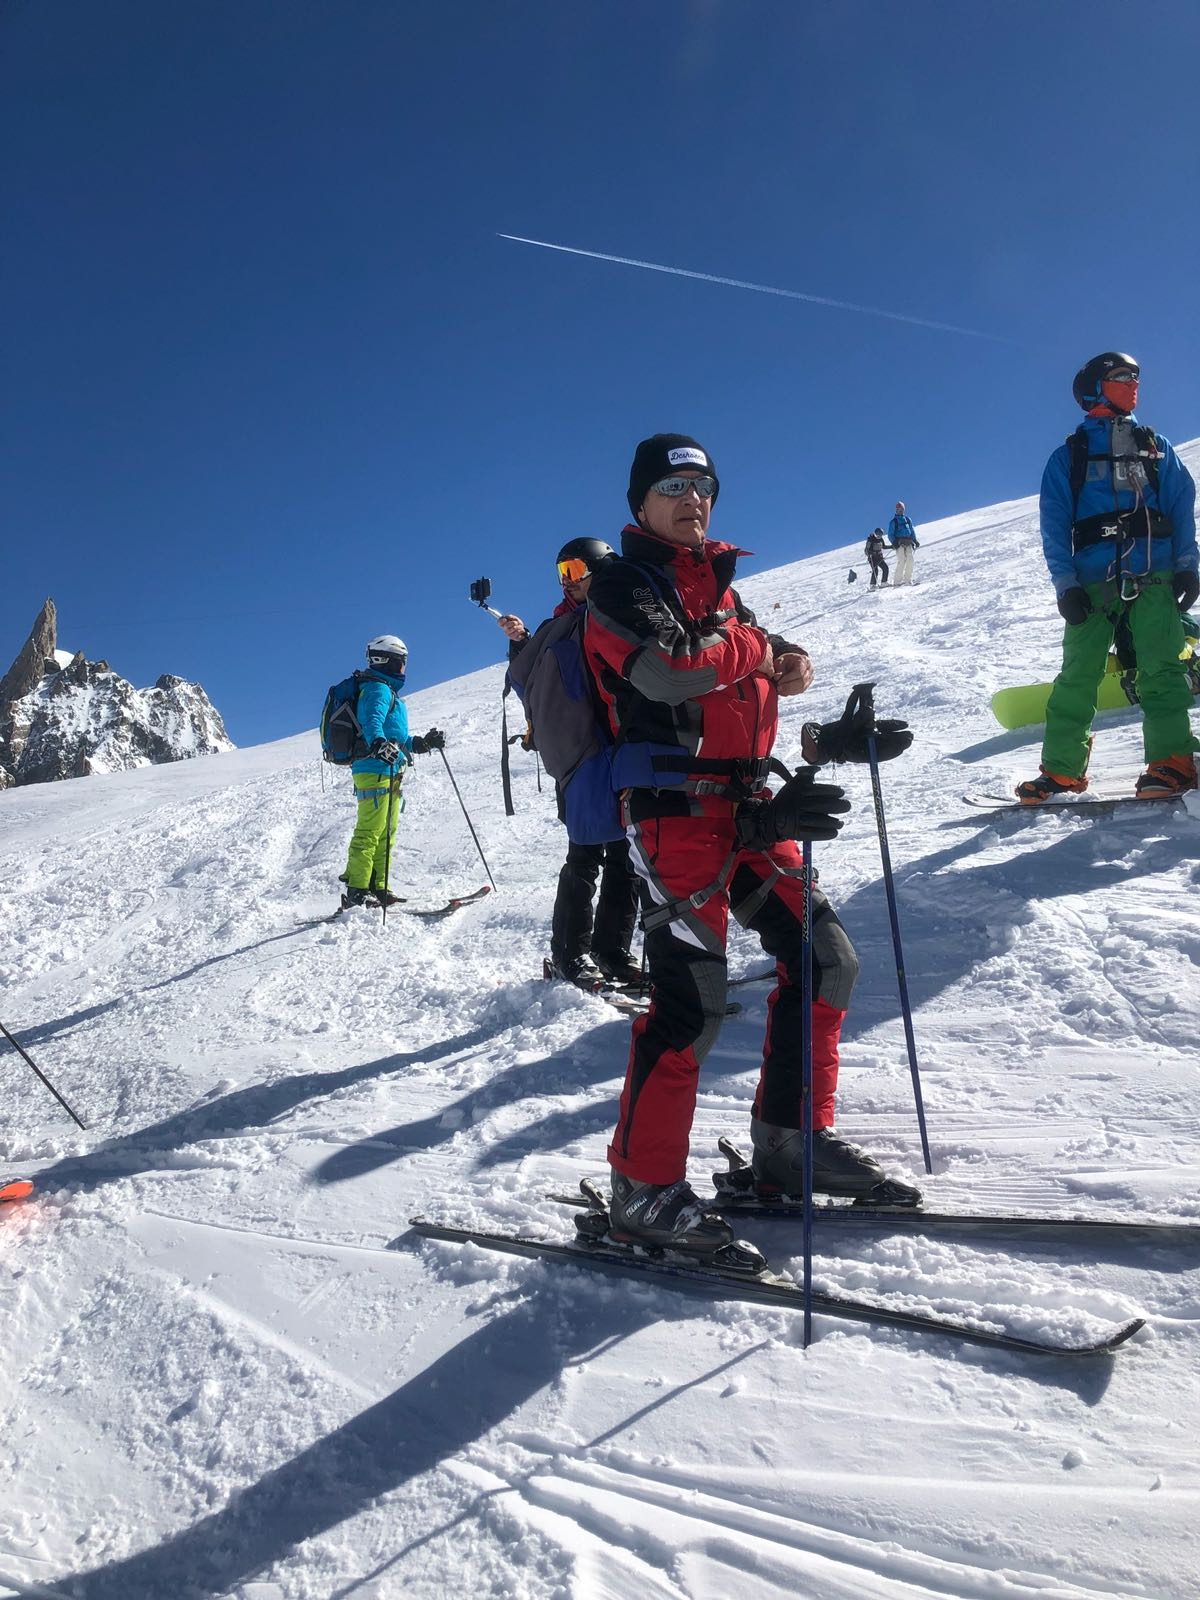 vallee blanche guide alpine proup (39)